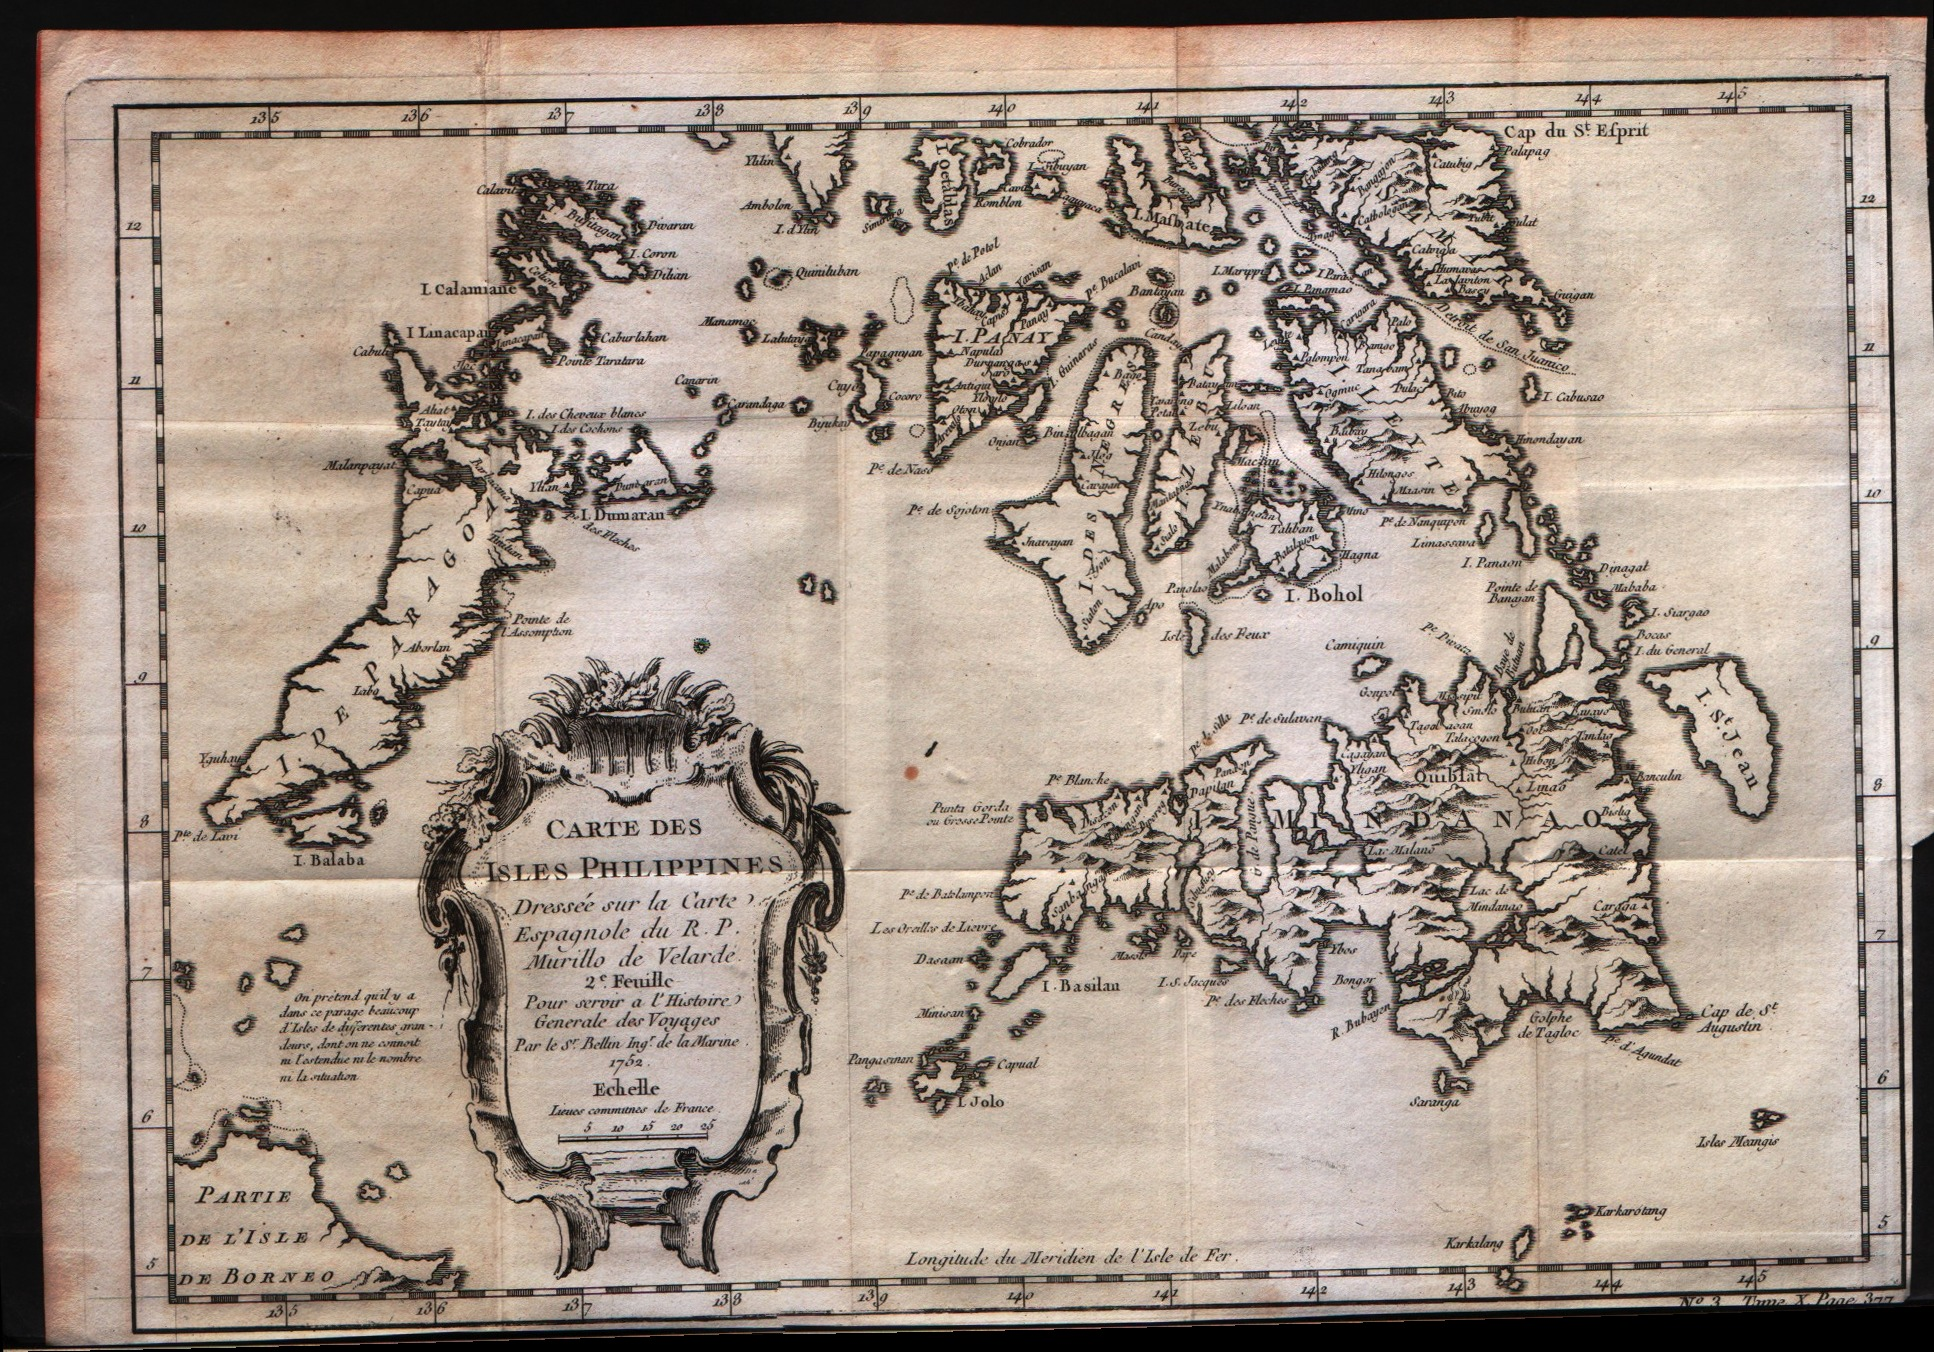 Carte des Isles Philippines 2Feuille